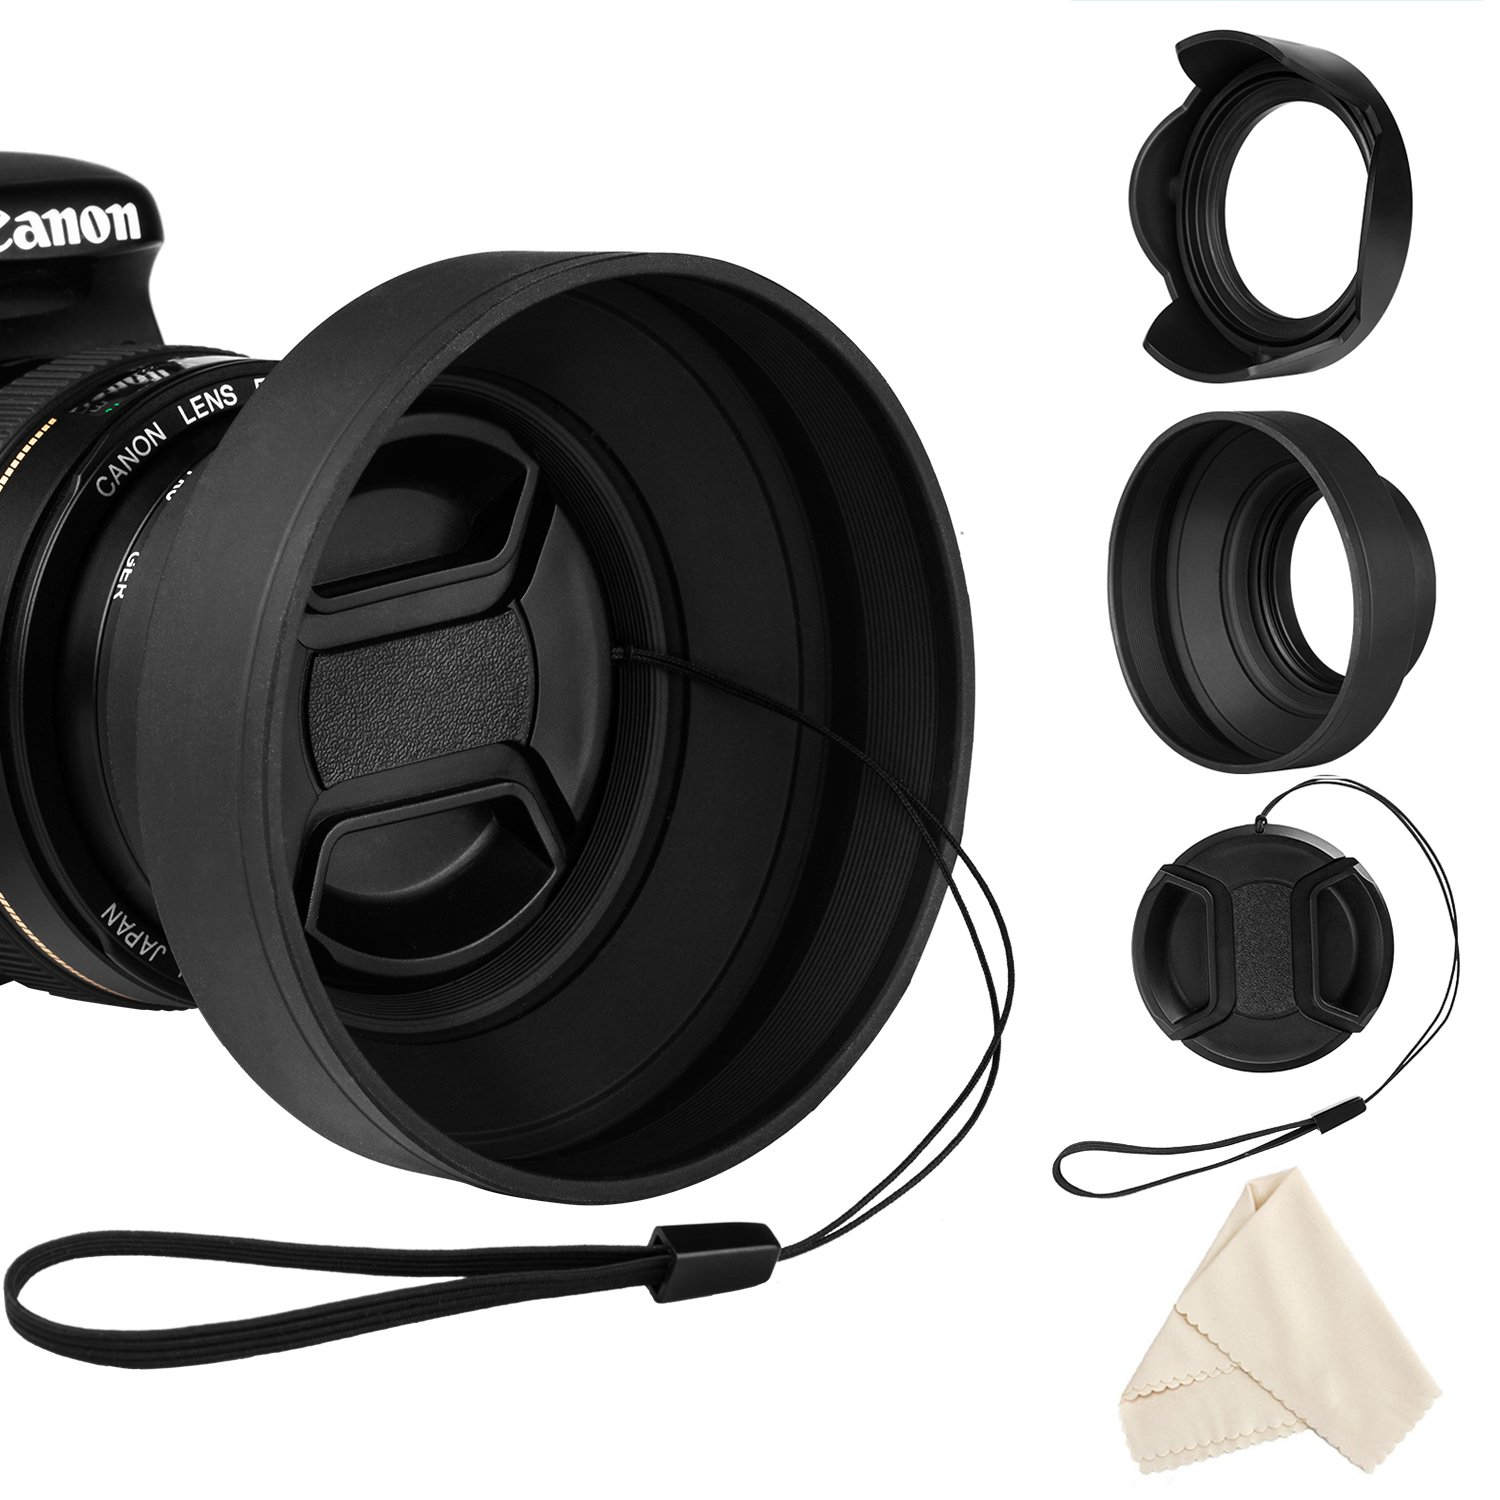 Veatree 67mm Lens Hood Set, Collapsible Rubber Lens Hood with Filter Thread + Reversible Tulip Flower Lens Hood + Center Pinch Lens Cap + Microfiber Lens Cleaning Cloth